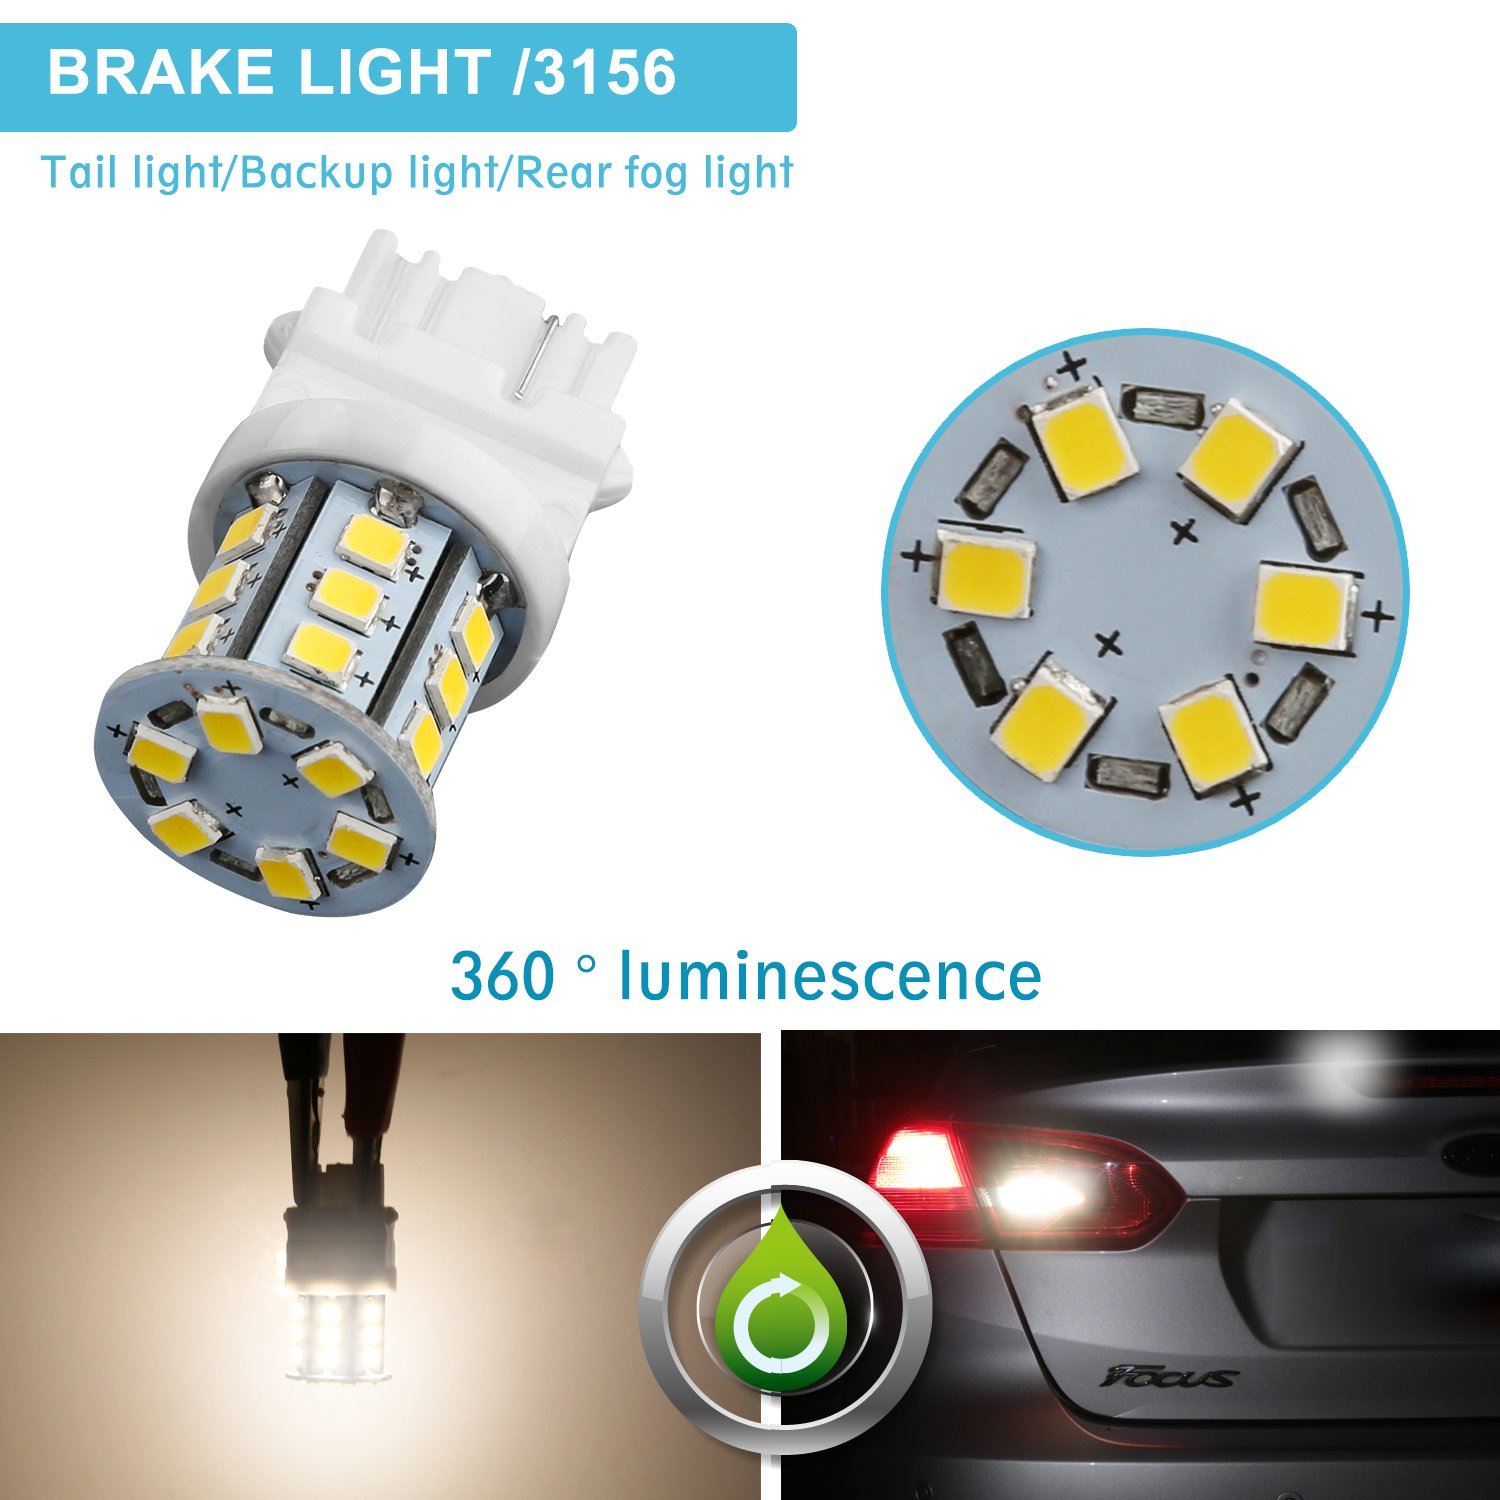 Ziste Led Bulbs For Backup Light 2835smd P27w T25 3156 2007 Ford Mustang Lights Wiring Tail Reverse 6000k Xenon White2 Pack Automotive